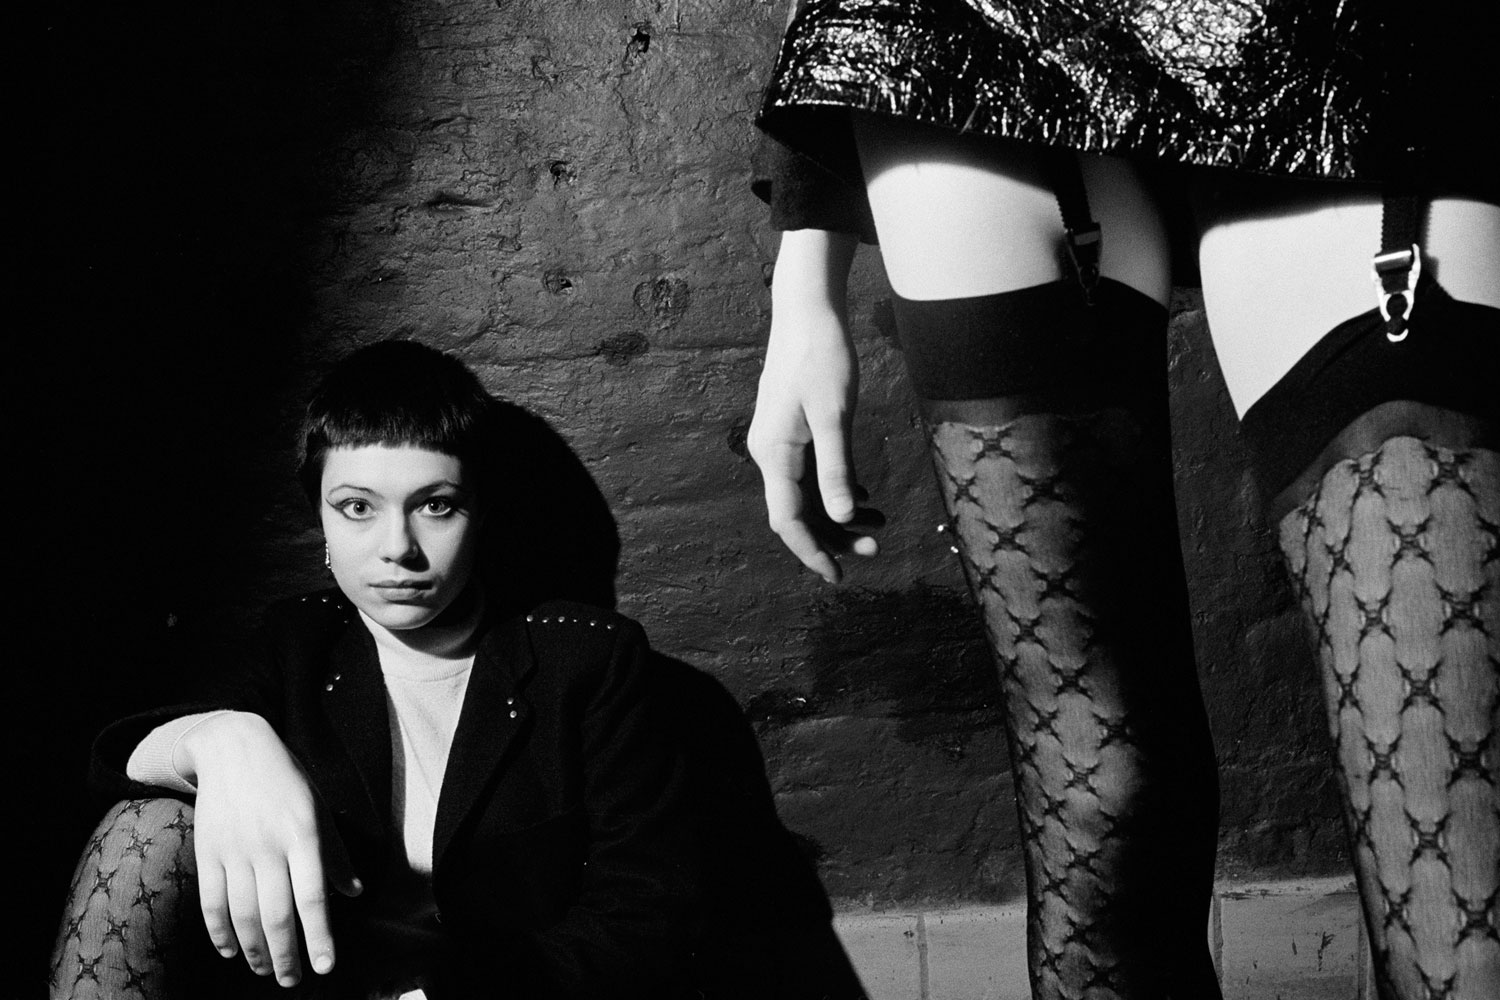 Book. PUNKS, by Karen Knorr & Olivier Richon. GOST Books. Fall 2013. Pictured:Thigh.